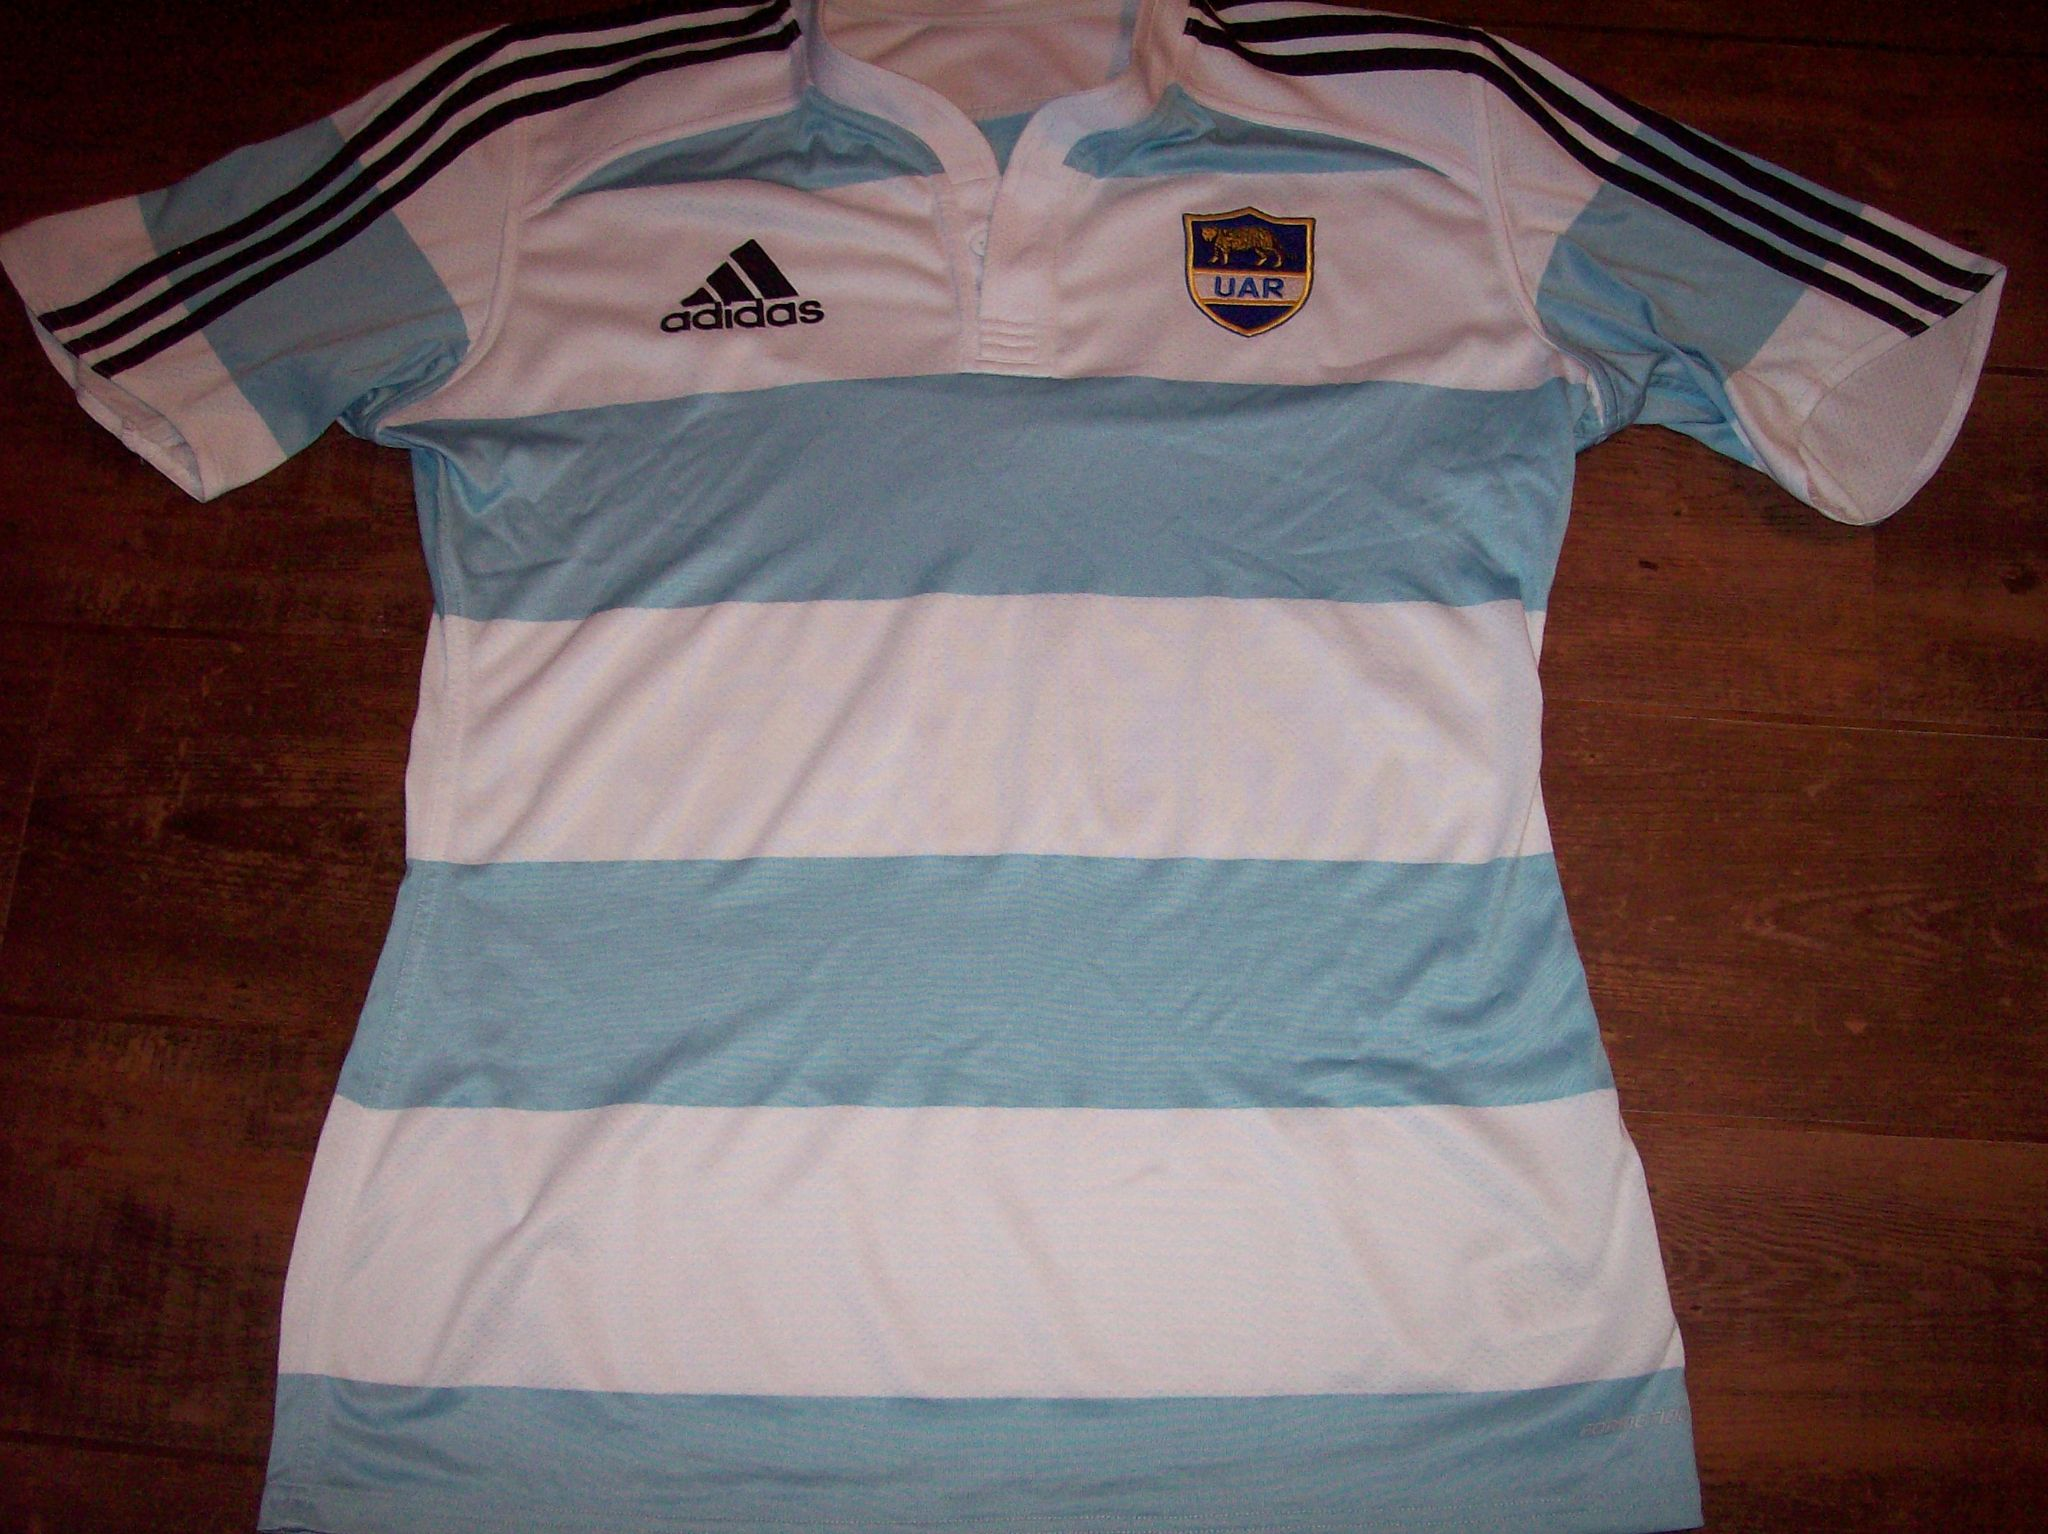 lamentar Cincuenta Policía  Classic Rugby Shirts | Argentina 2013 Old Vintage Rugby Jersey